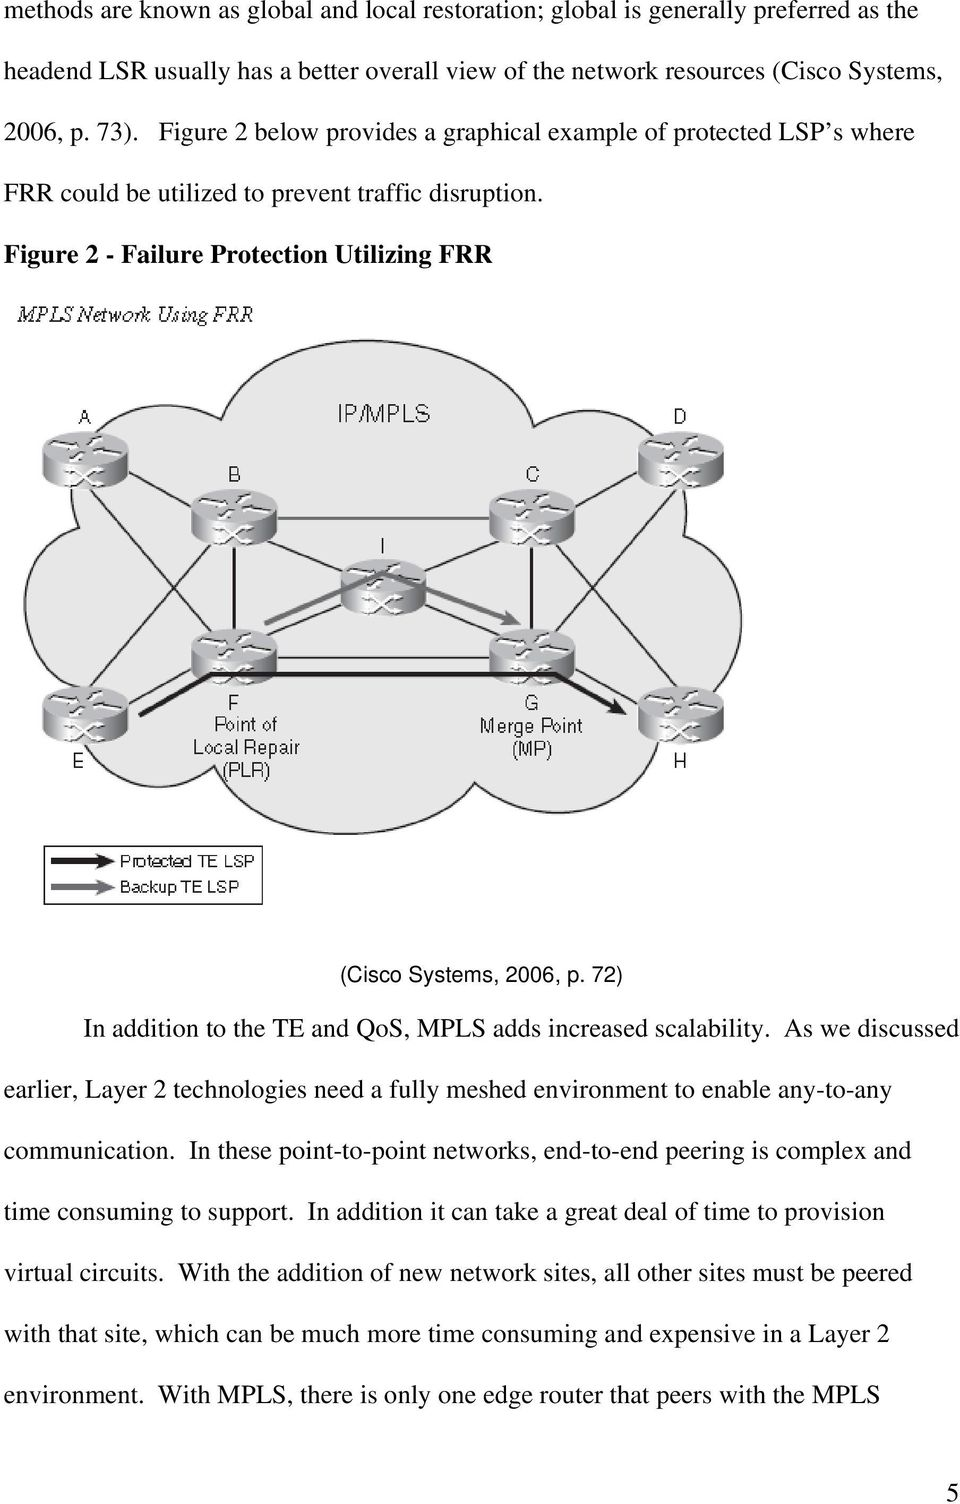 72) In addition to the TE and QoS, MPLS adds increased scalability. As we discussed earlier, Layer 2 technologies need a fully meshed environment to enable any-to-any communication.